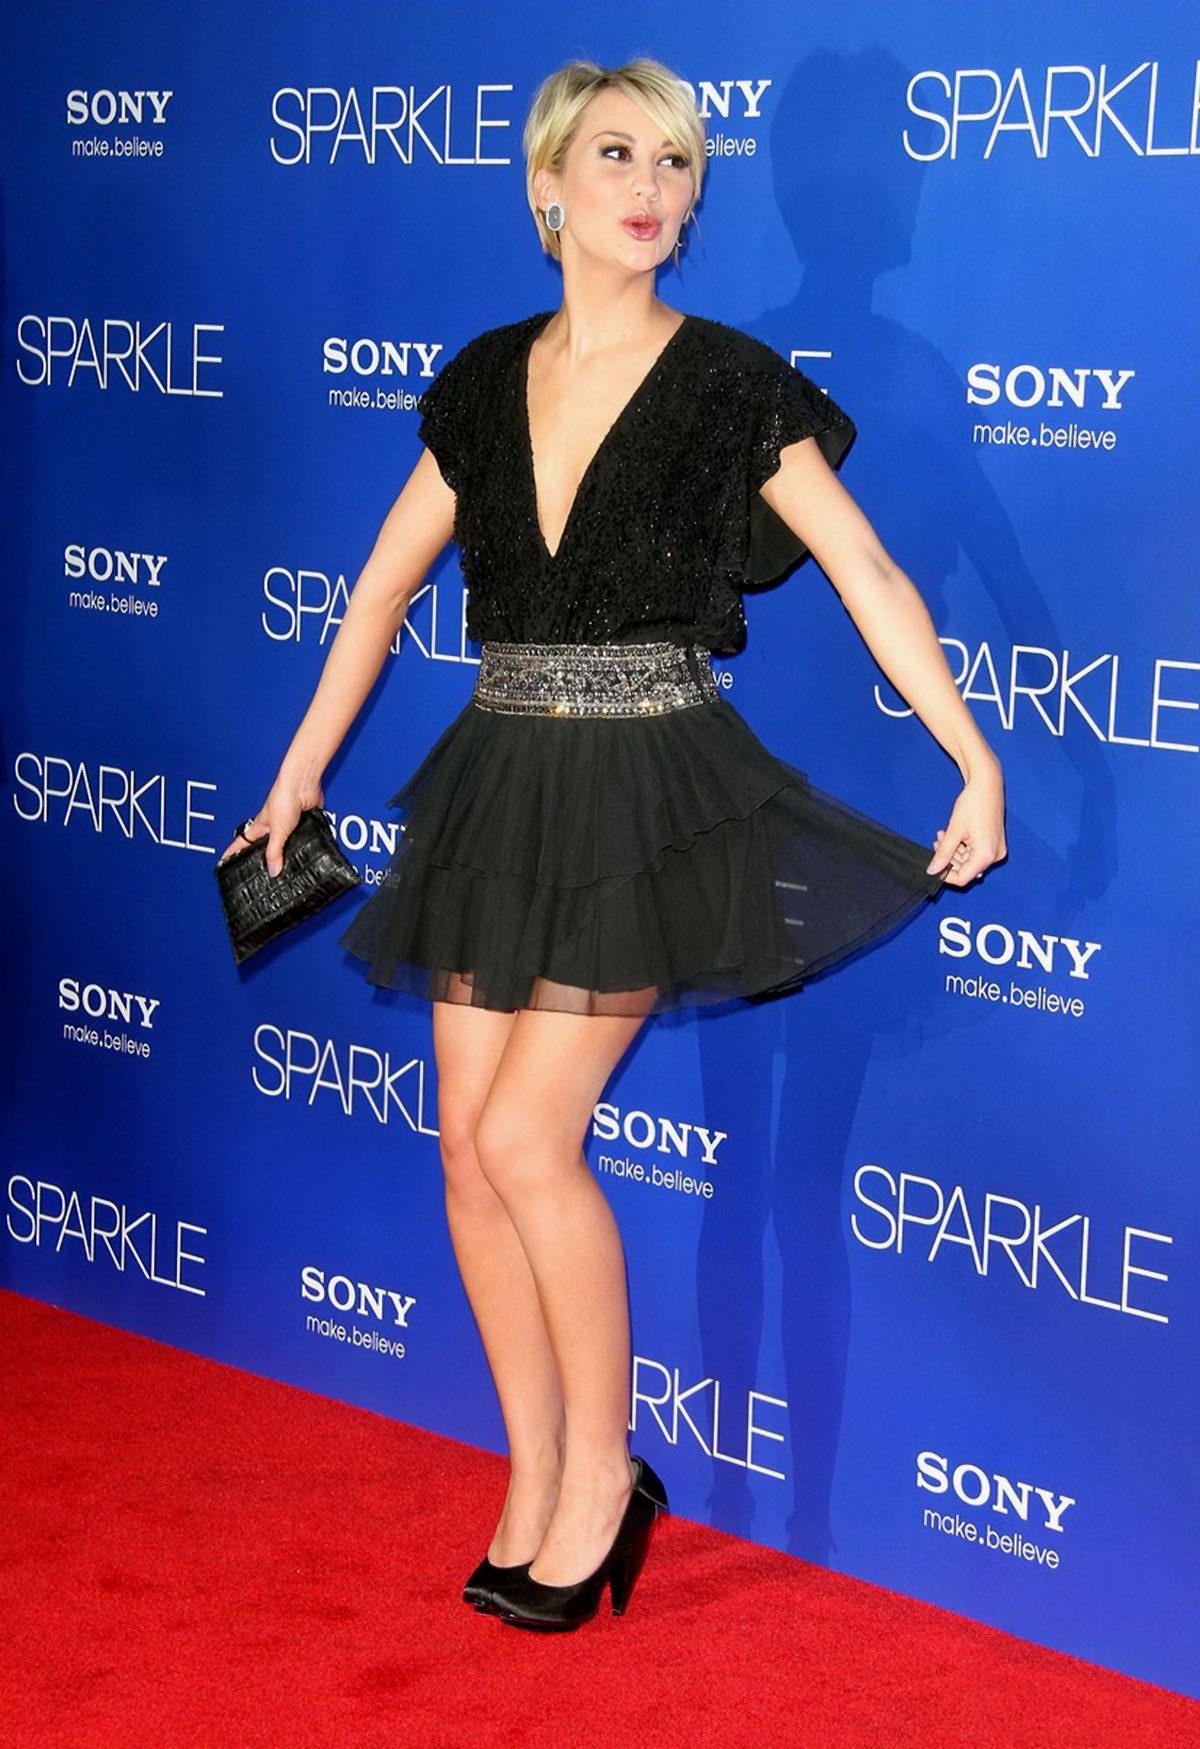 chelsea kane at sparkle premiere in hollywood � hawtcelebs